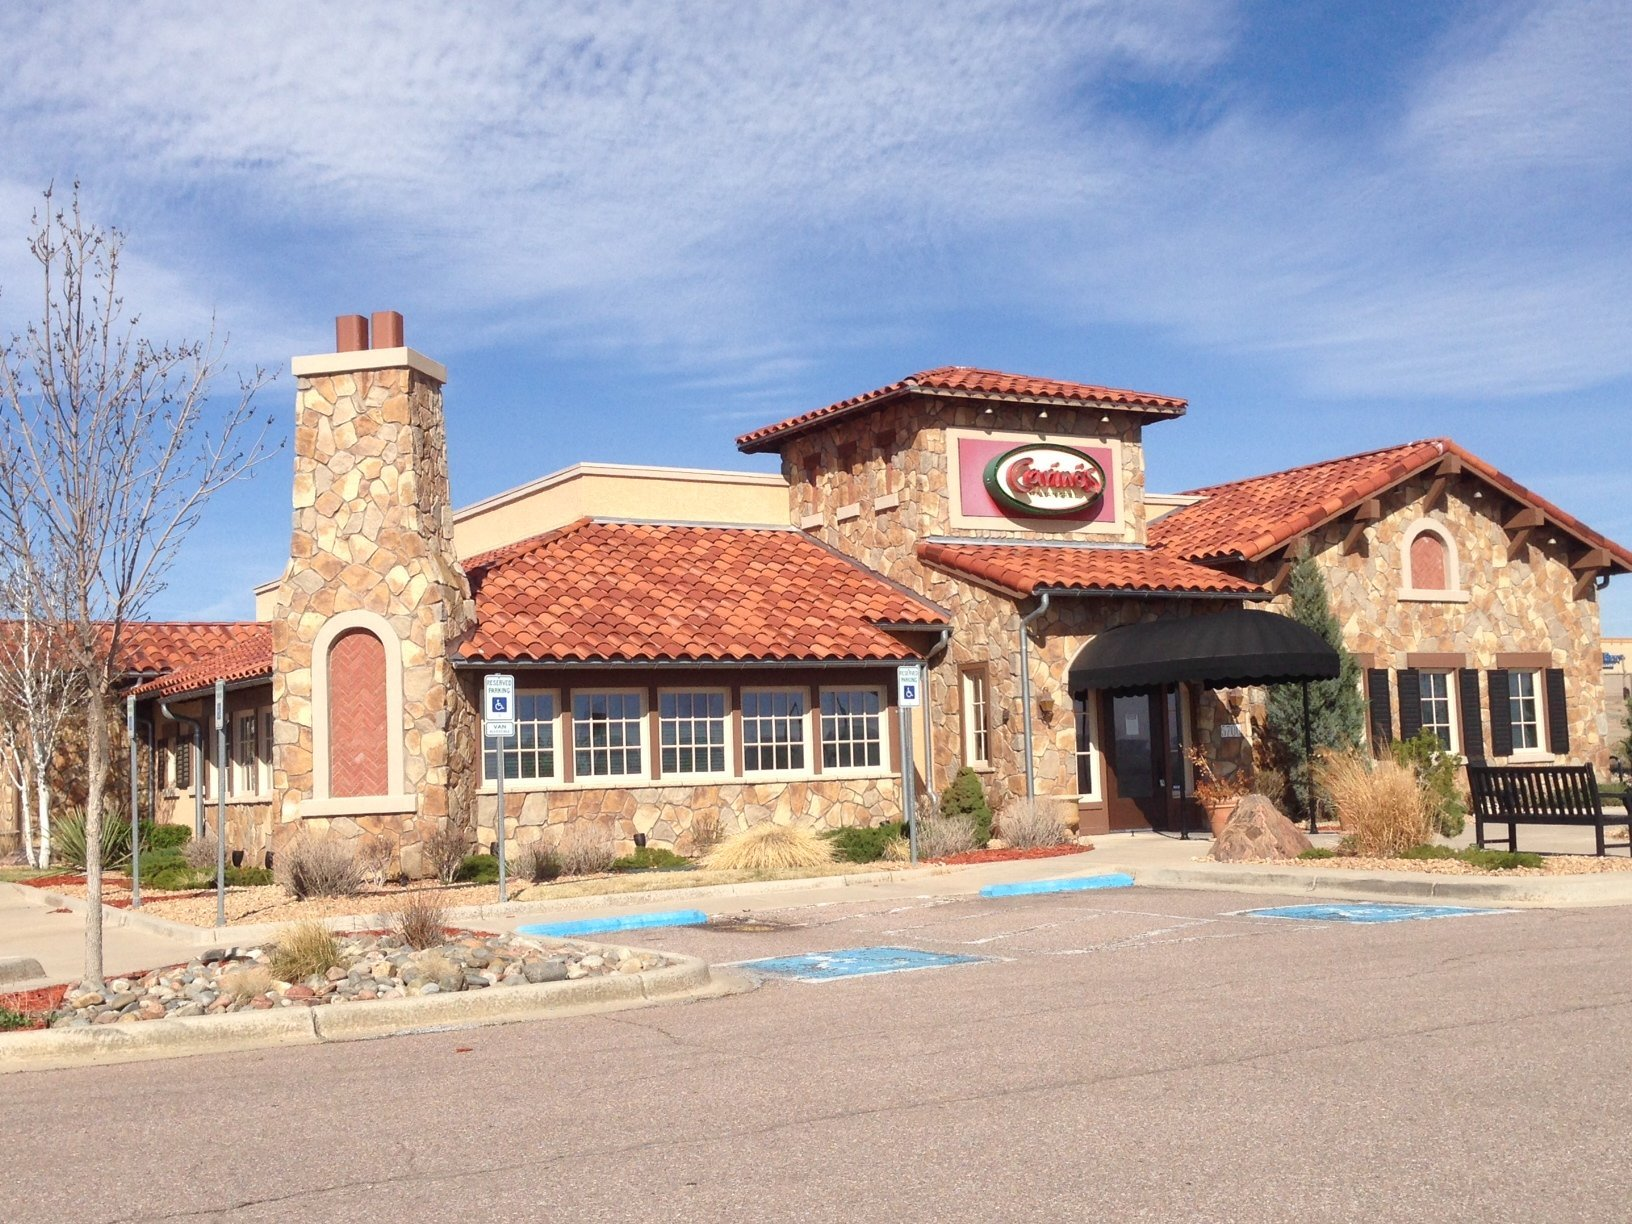 NavPoint Real Estate Group Closes Retail Building in Pueblo for $800,000